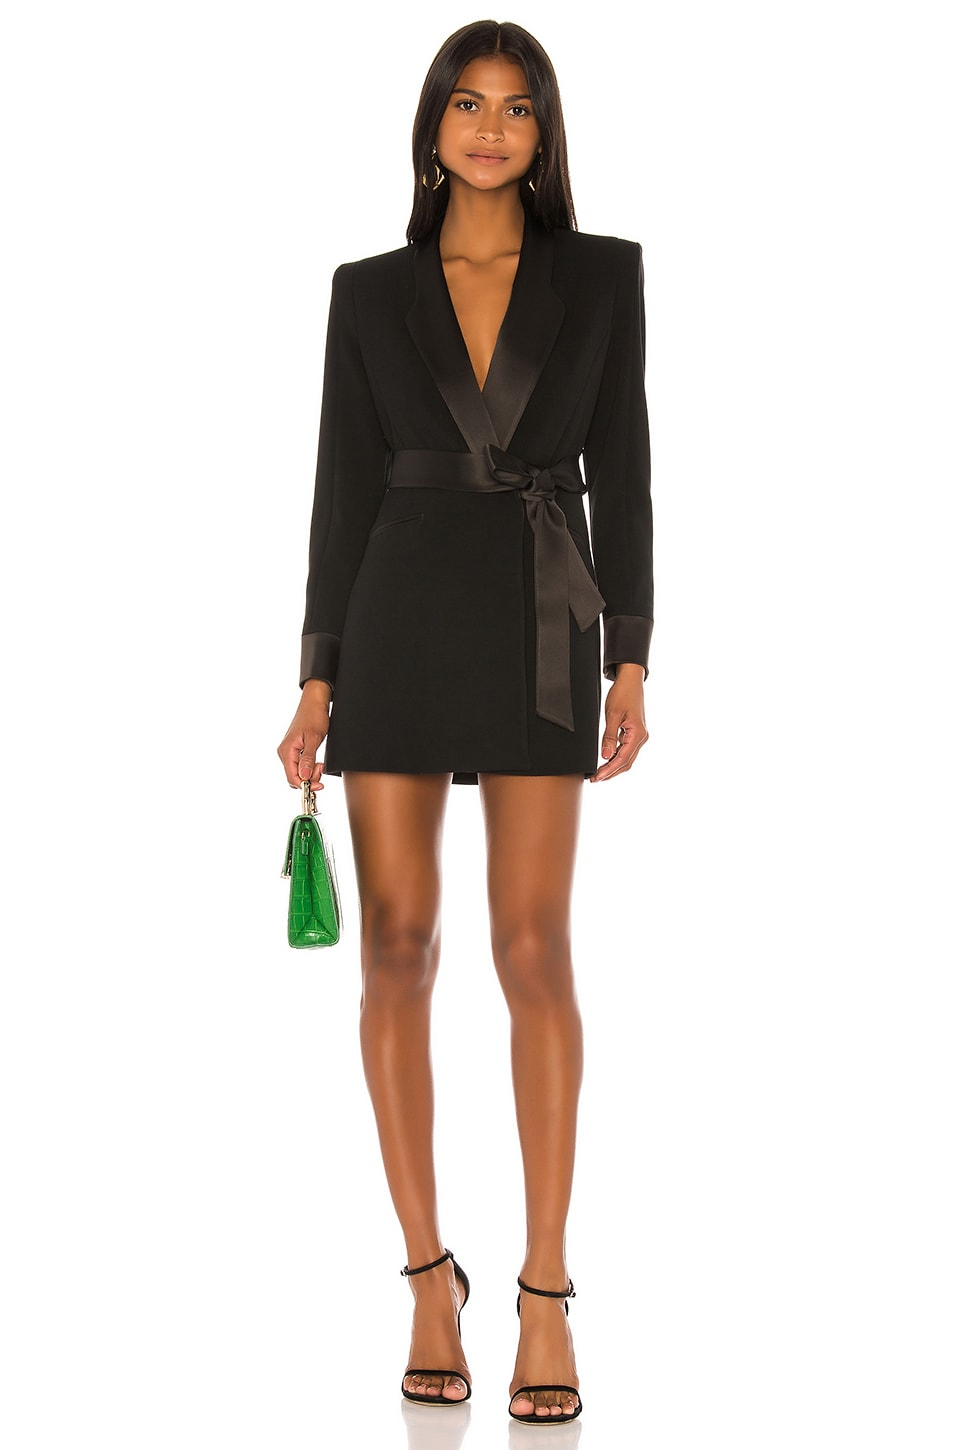 VALENTINA SHAH Carlotta Blazer Dress in Black